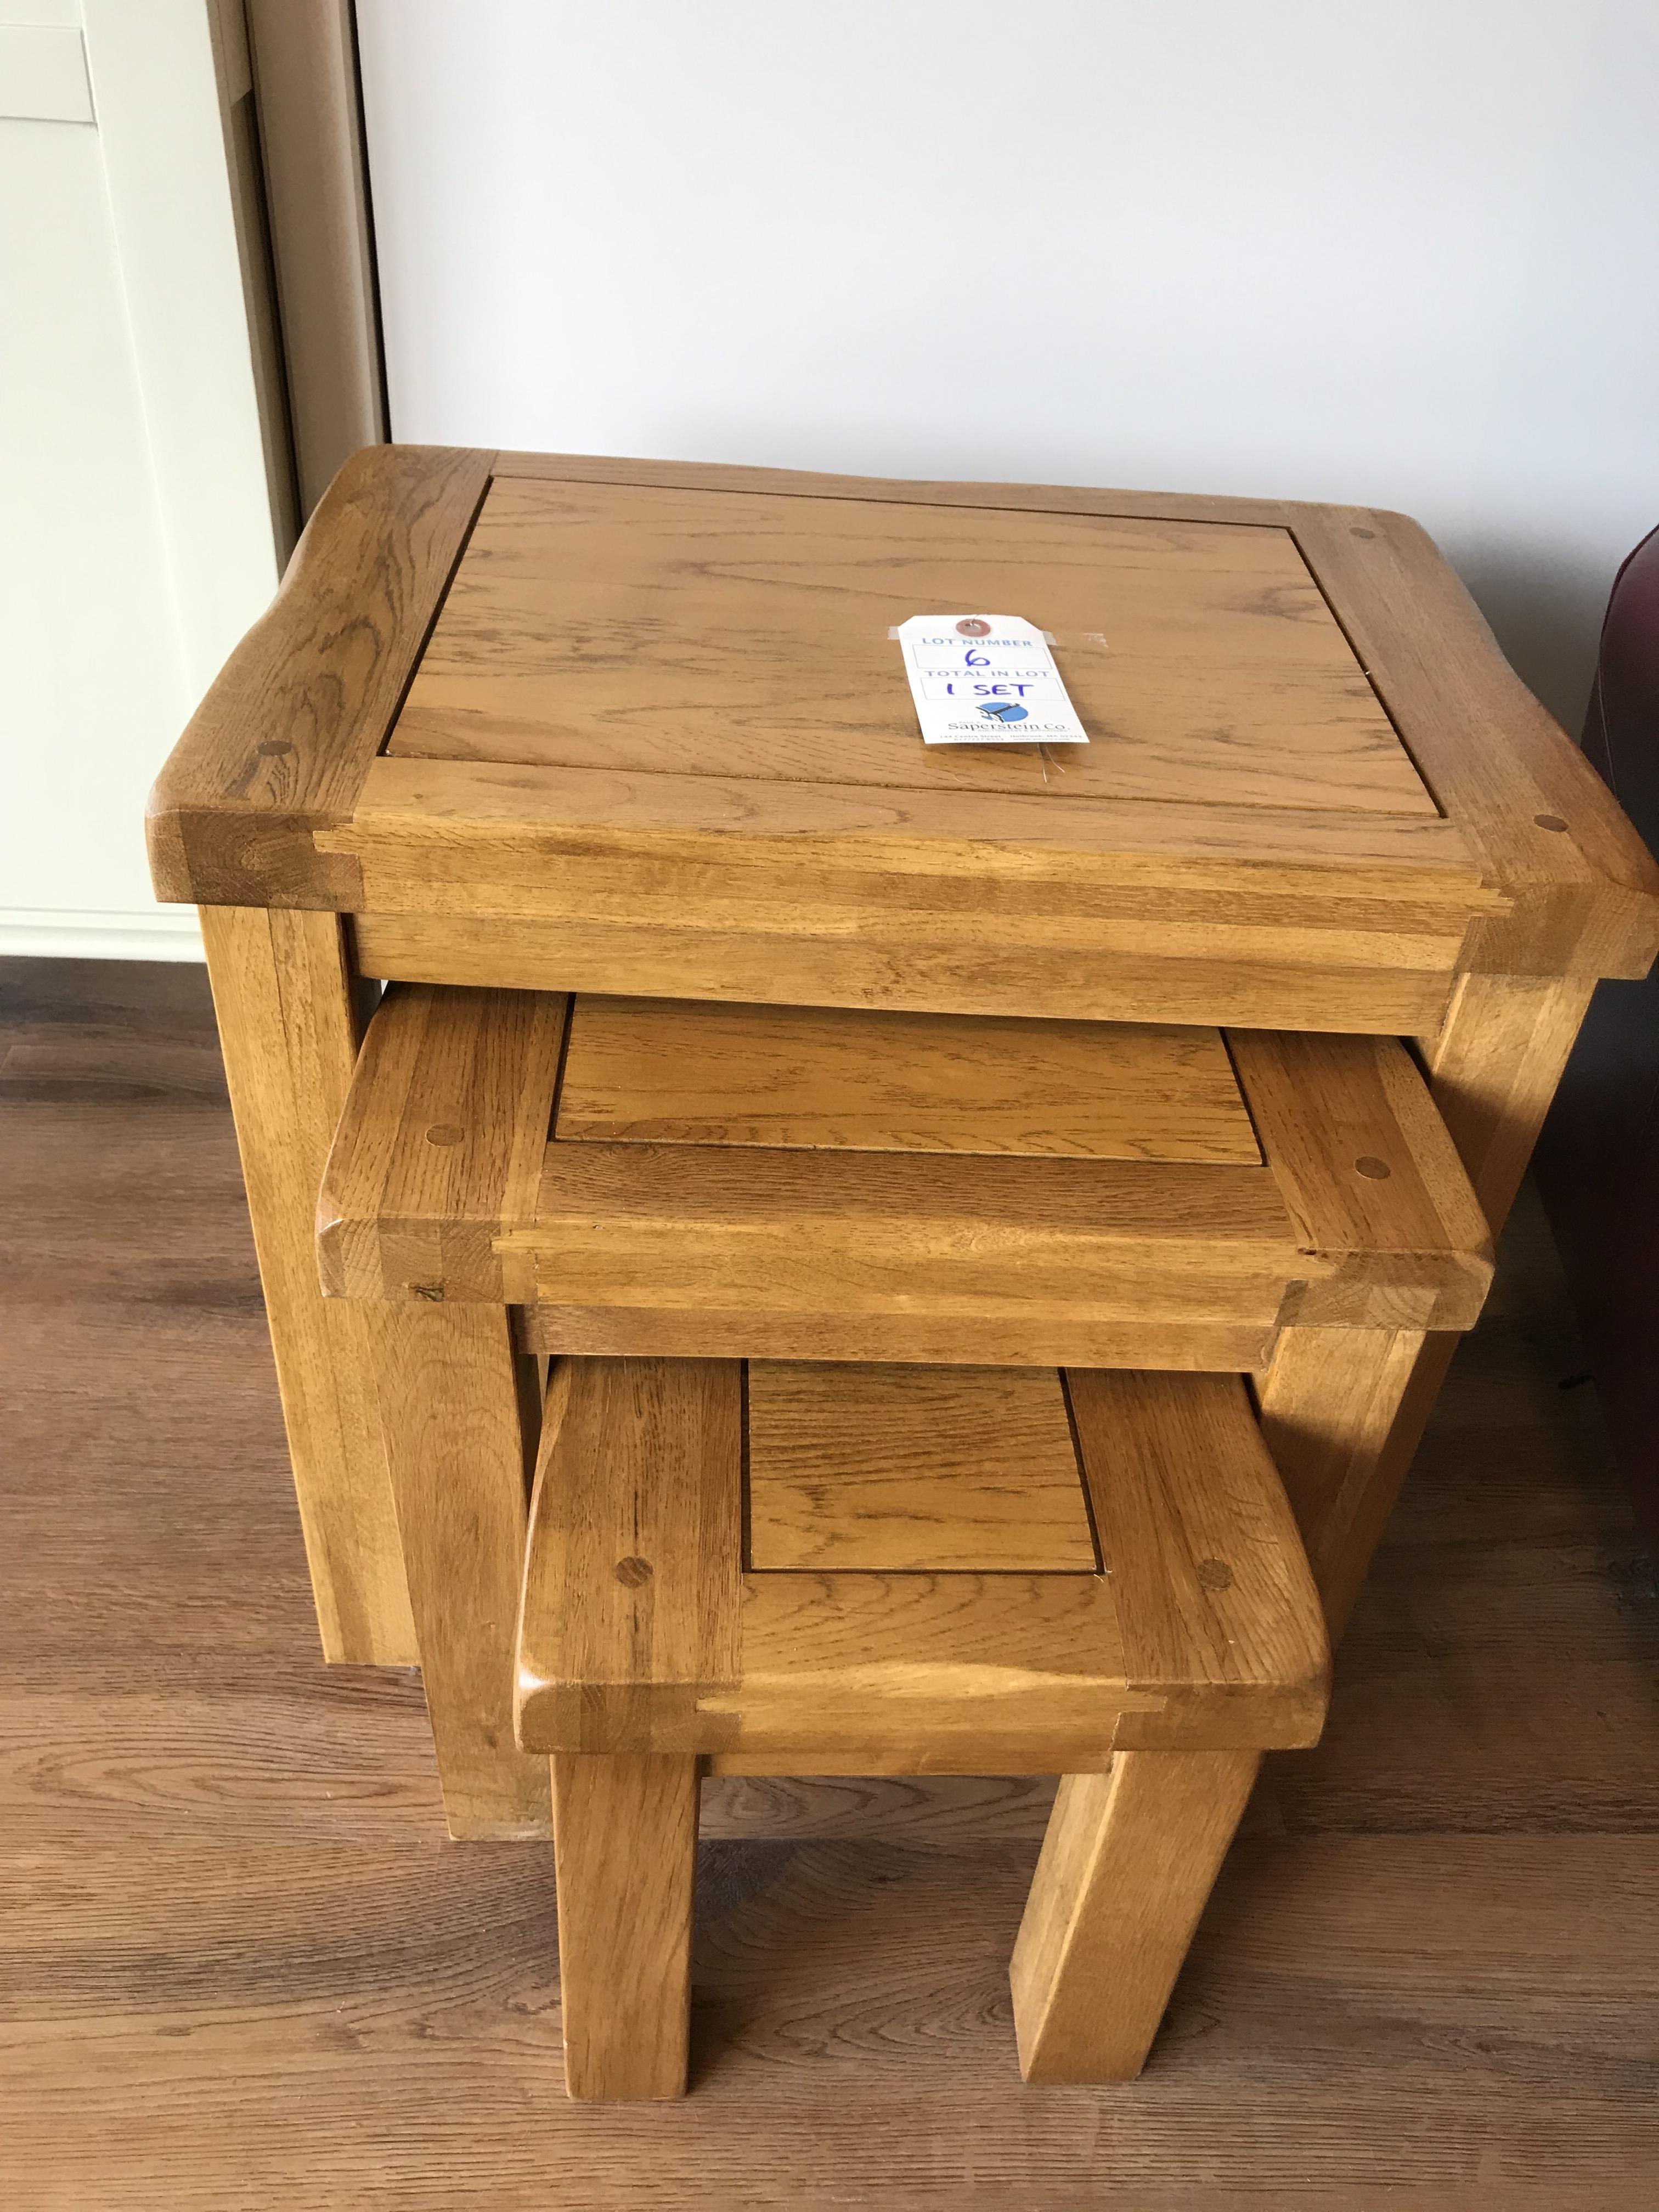 Nesting Table (Original Rustic) See Picture For Dimensions and Product Info